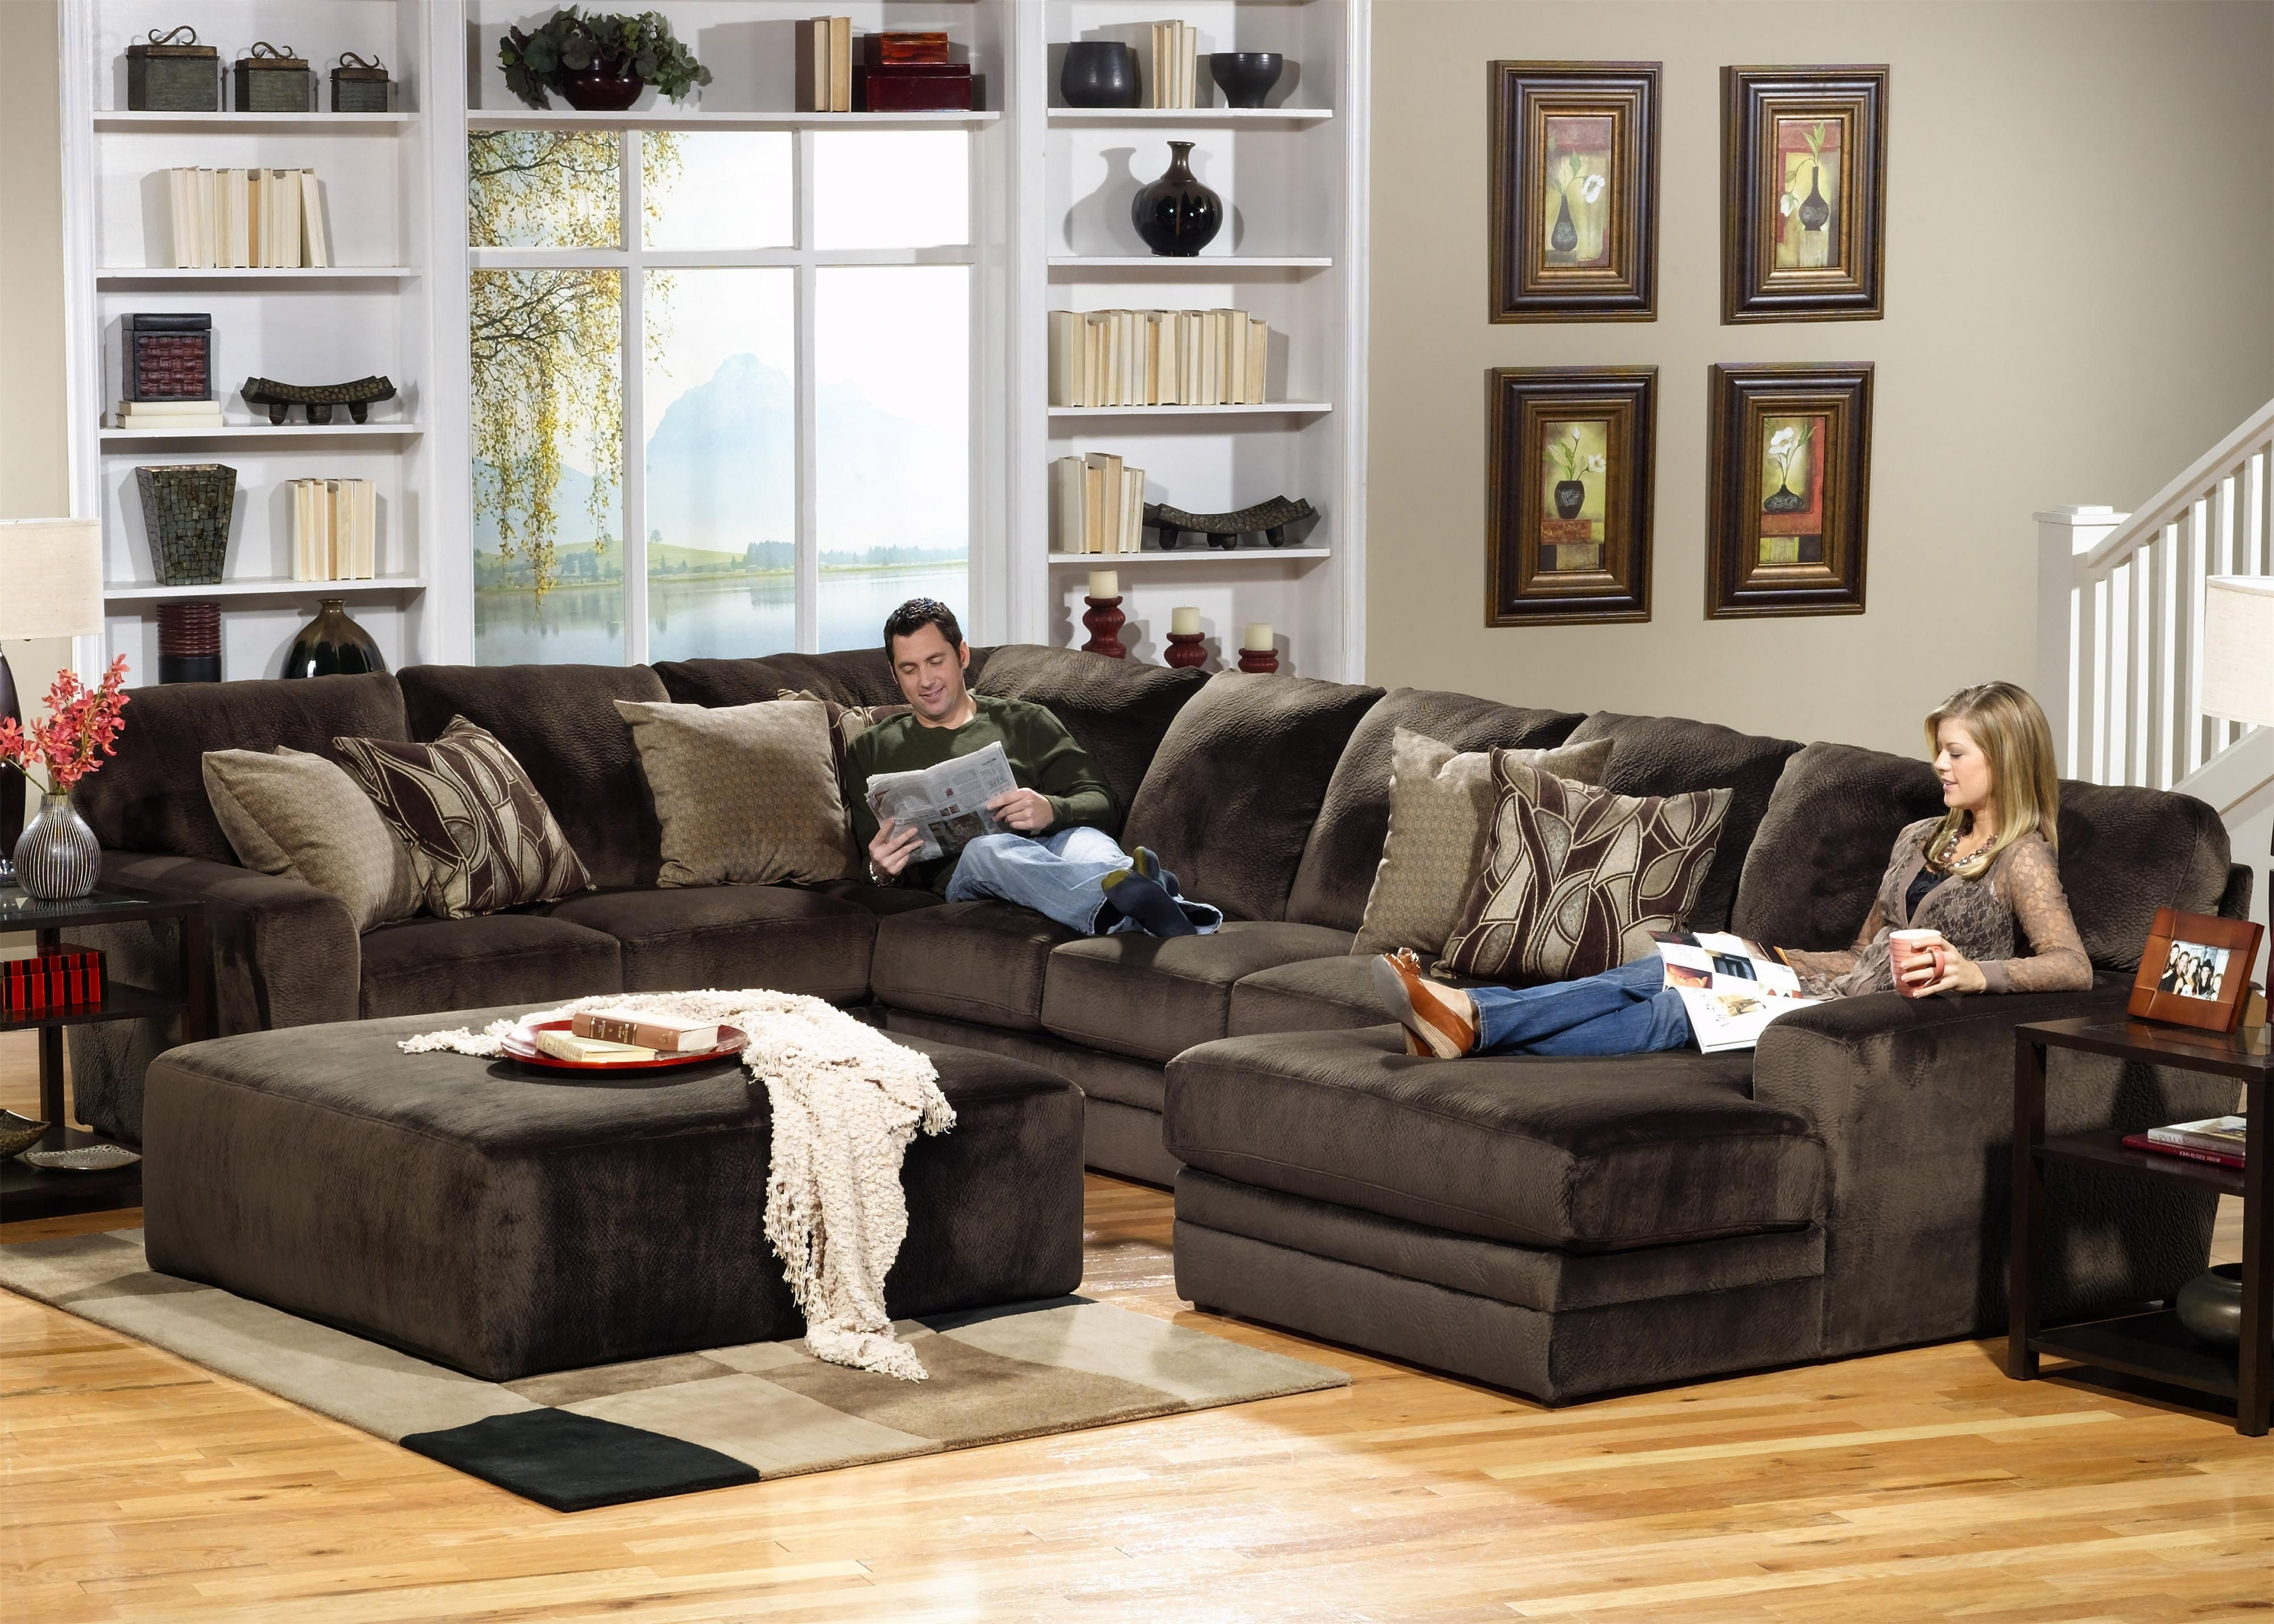 4377 Everest 3 Piece Sectional With Lsf Sectionjackson Furniture For Dayton Ohio Sectional Sofas (View 4 of 10)